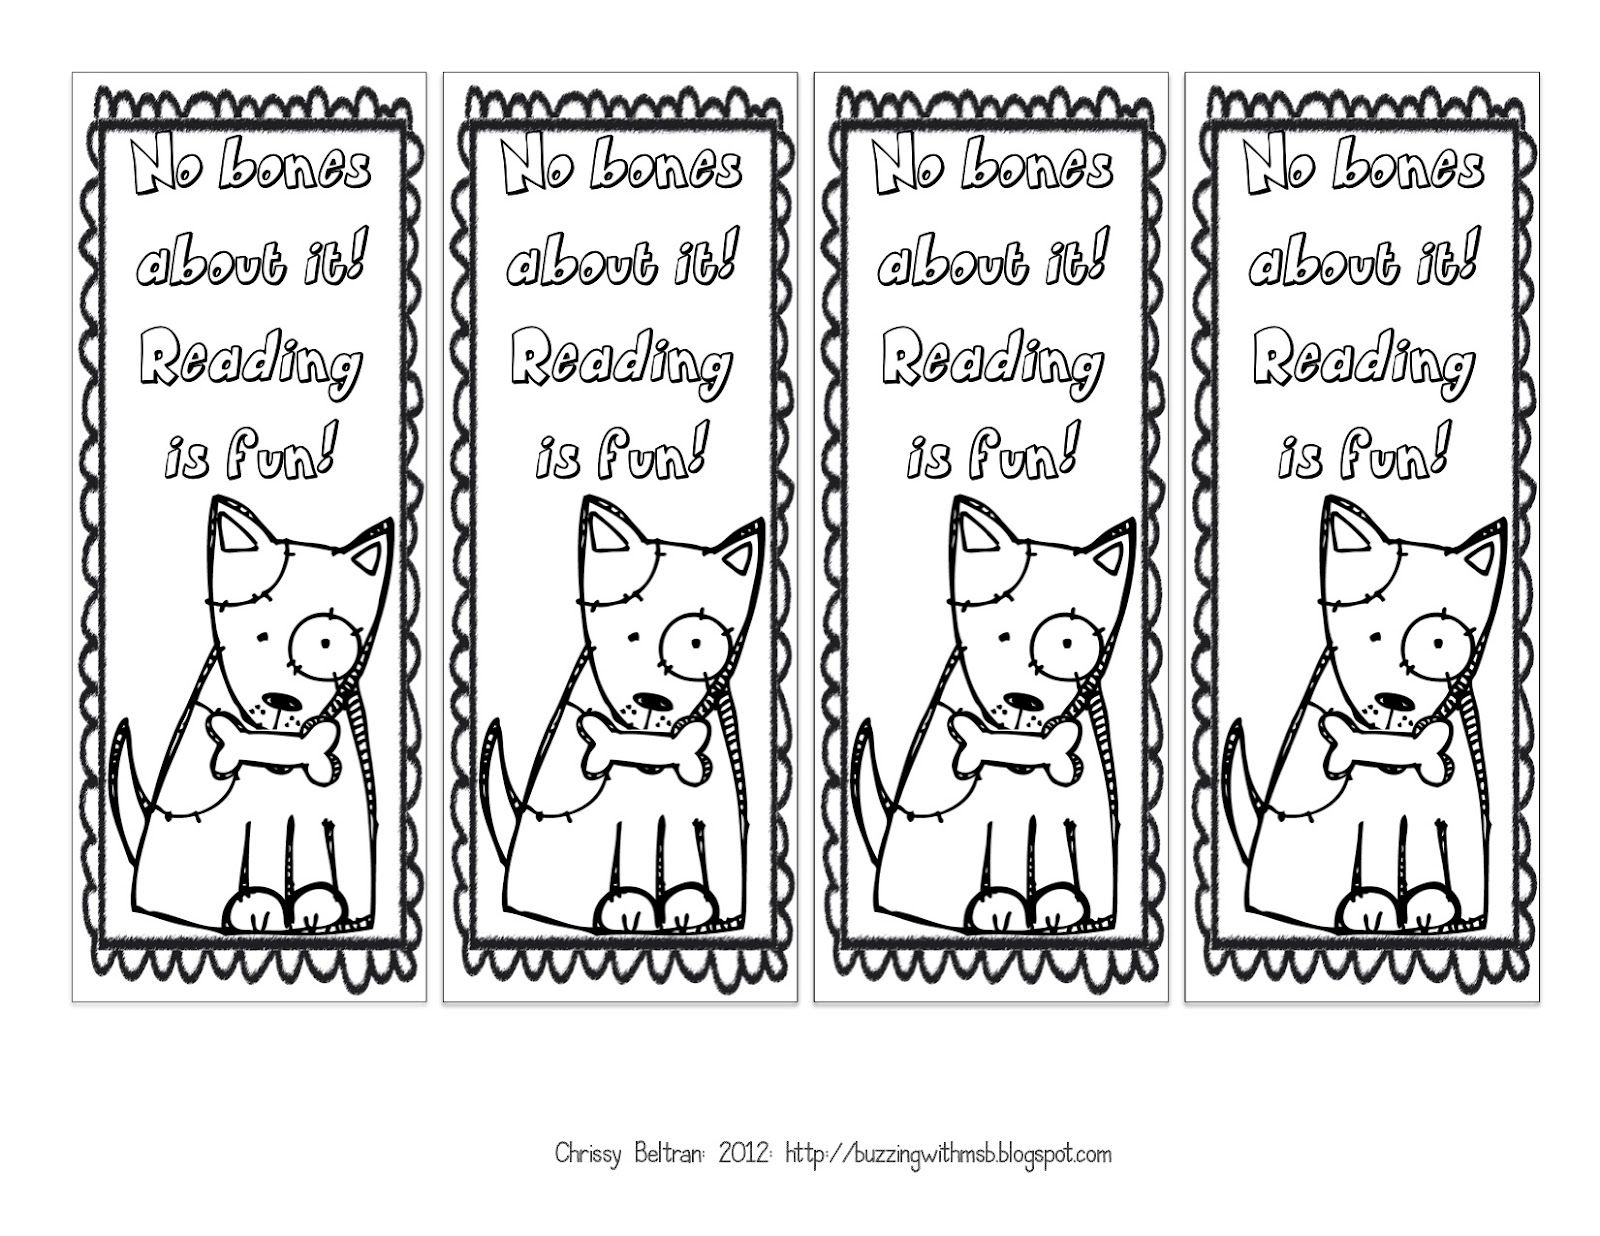 Free printable santa wish list coloring page tickled peach studio - Find This Pin And More On Library Dog Bookmarks To Color Free Printable